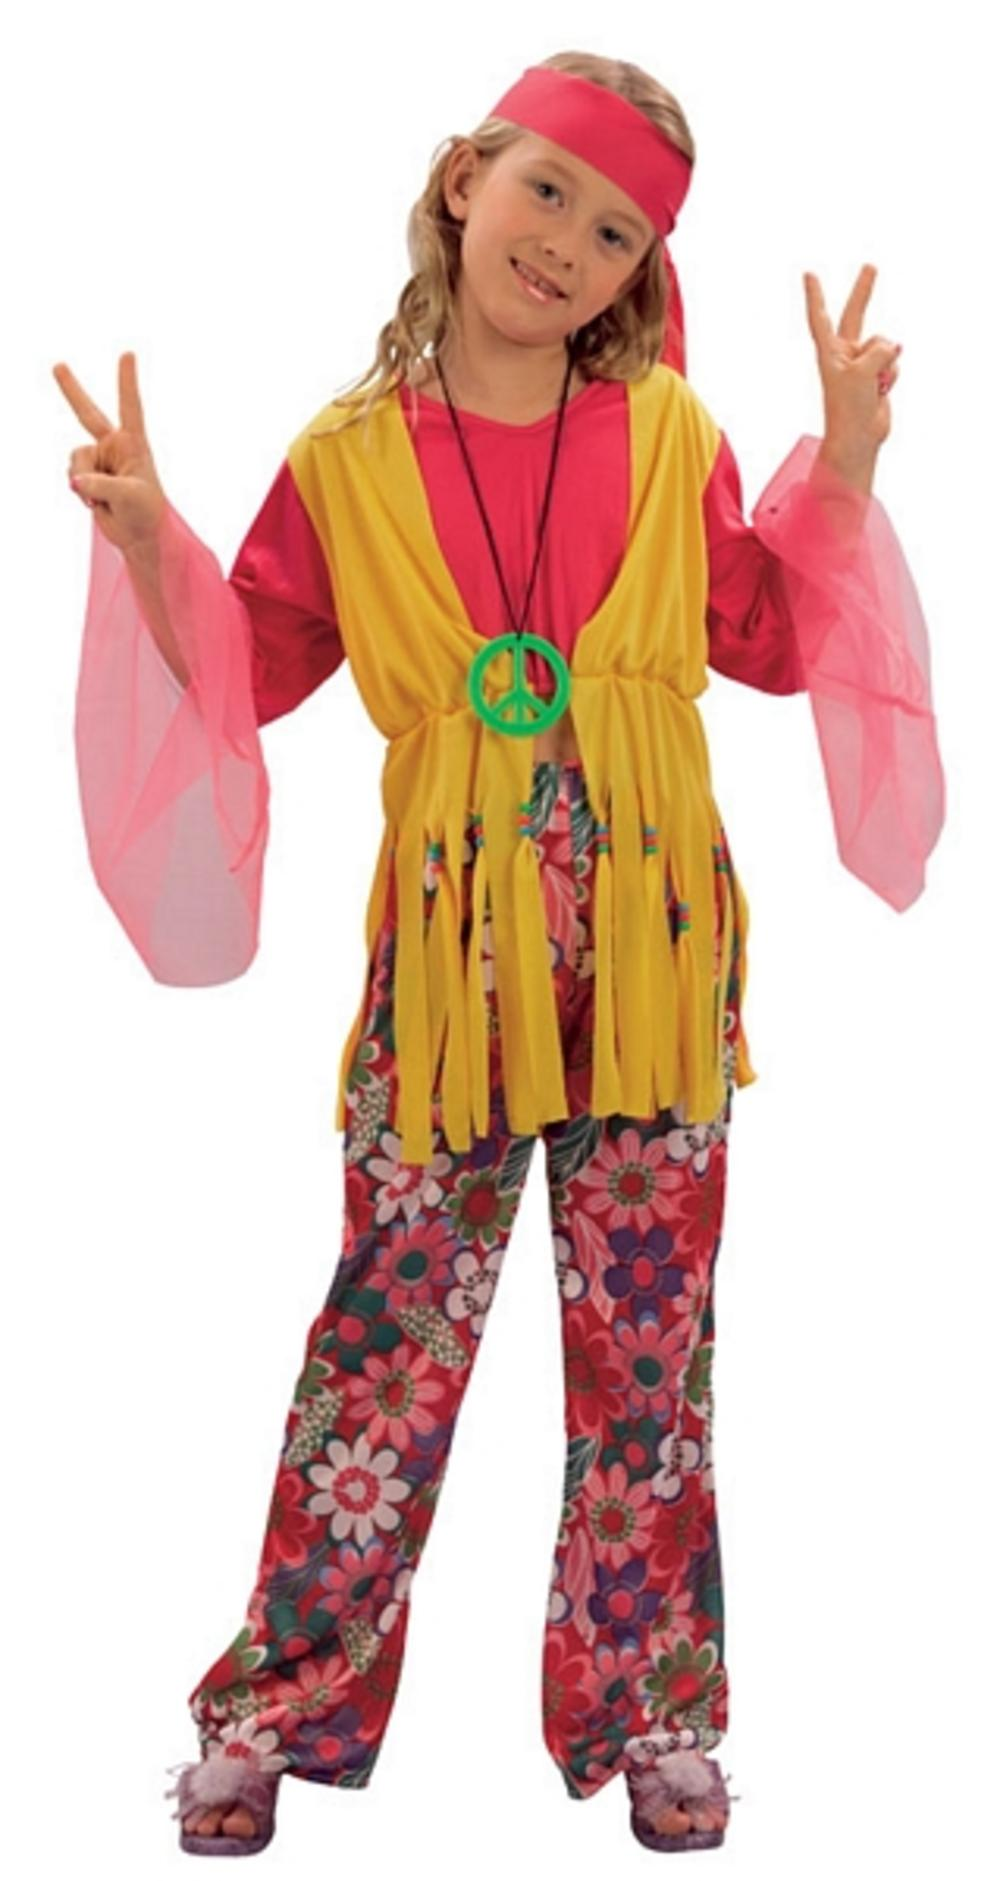 Hippy 1960s Girl Costume Groovy Kids 1970s Hippie 60s Child Fancy Dress Outfit